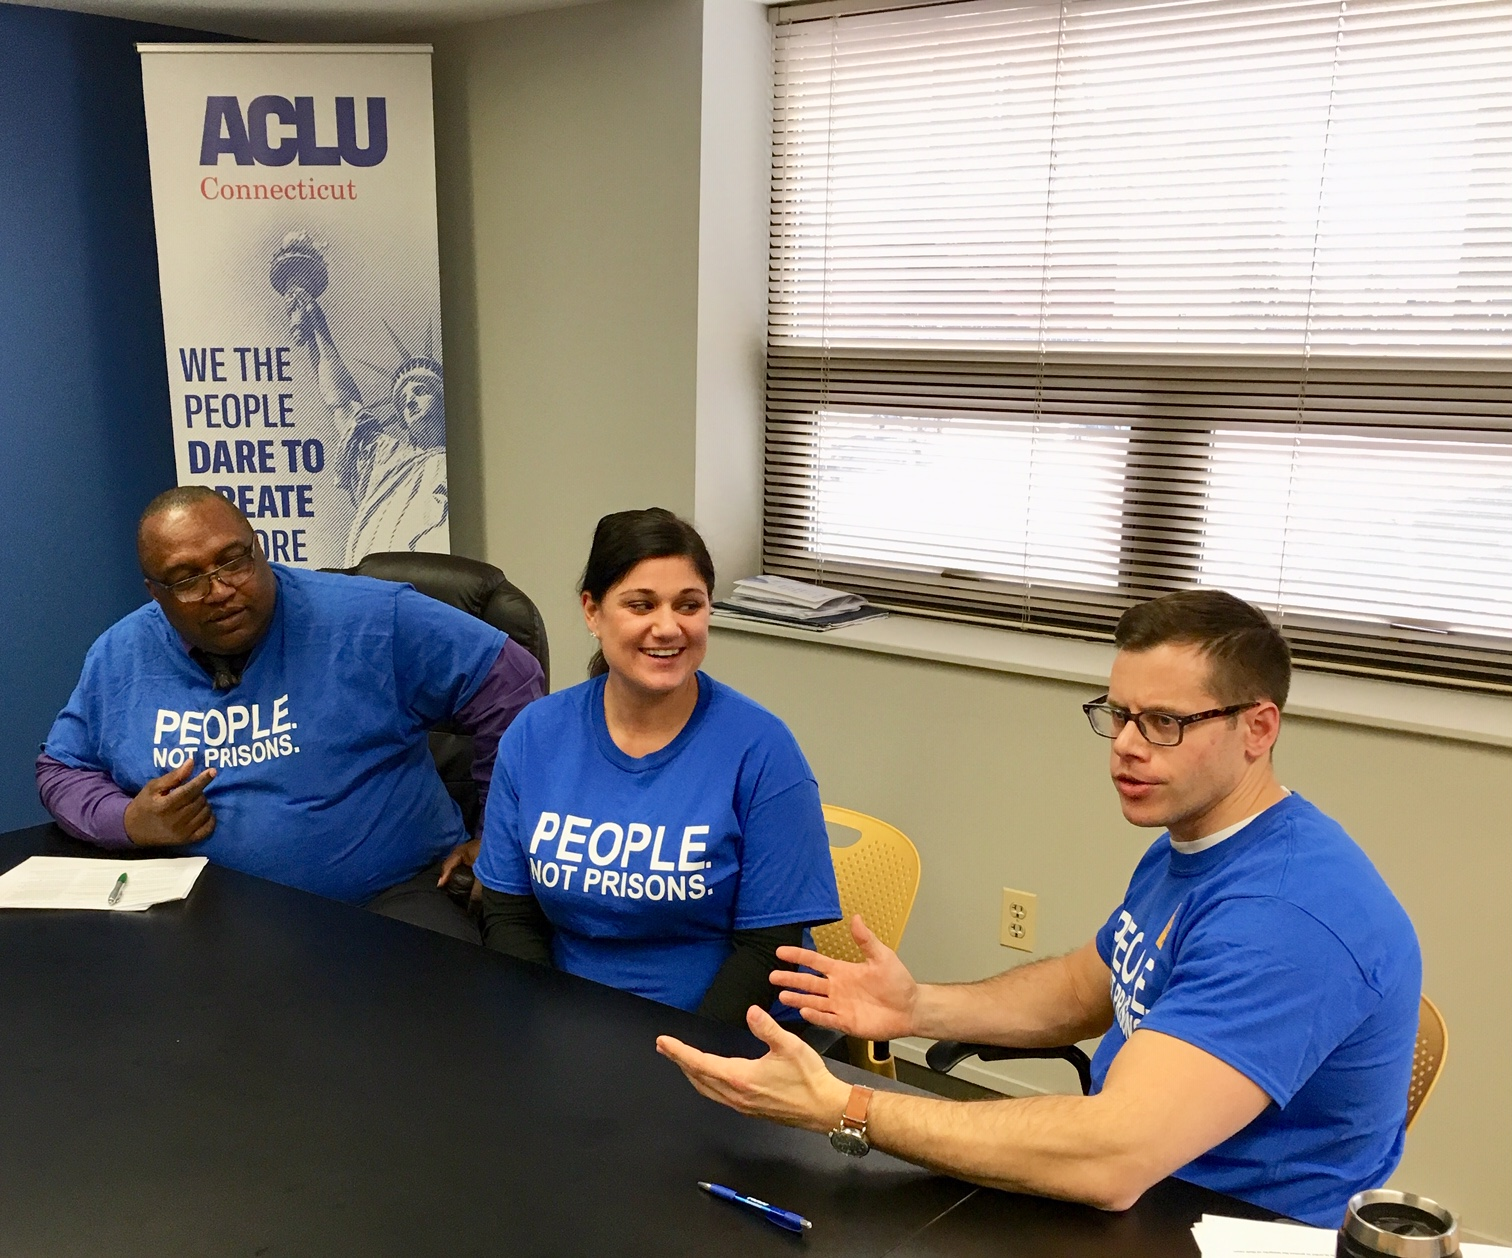 ACLU's new twist on lobbying for justice reforms